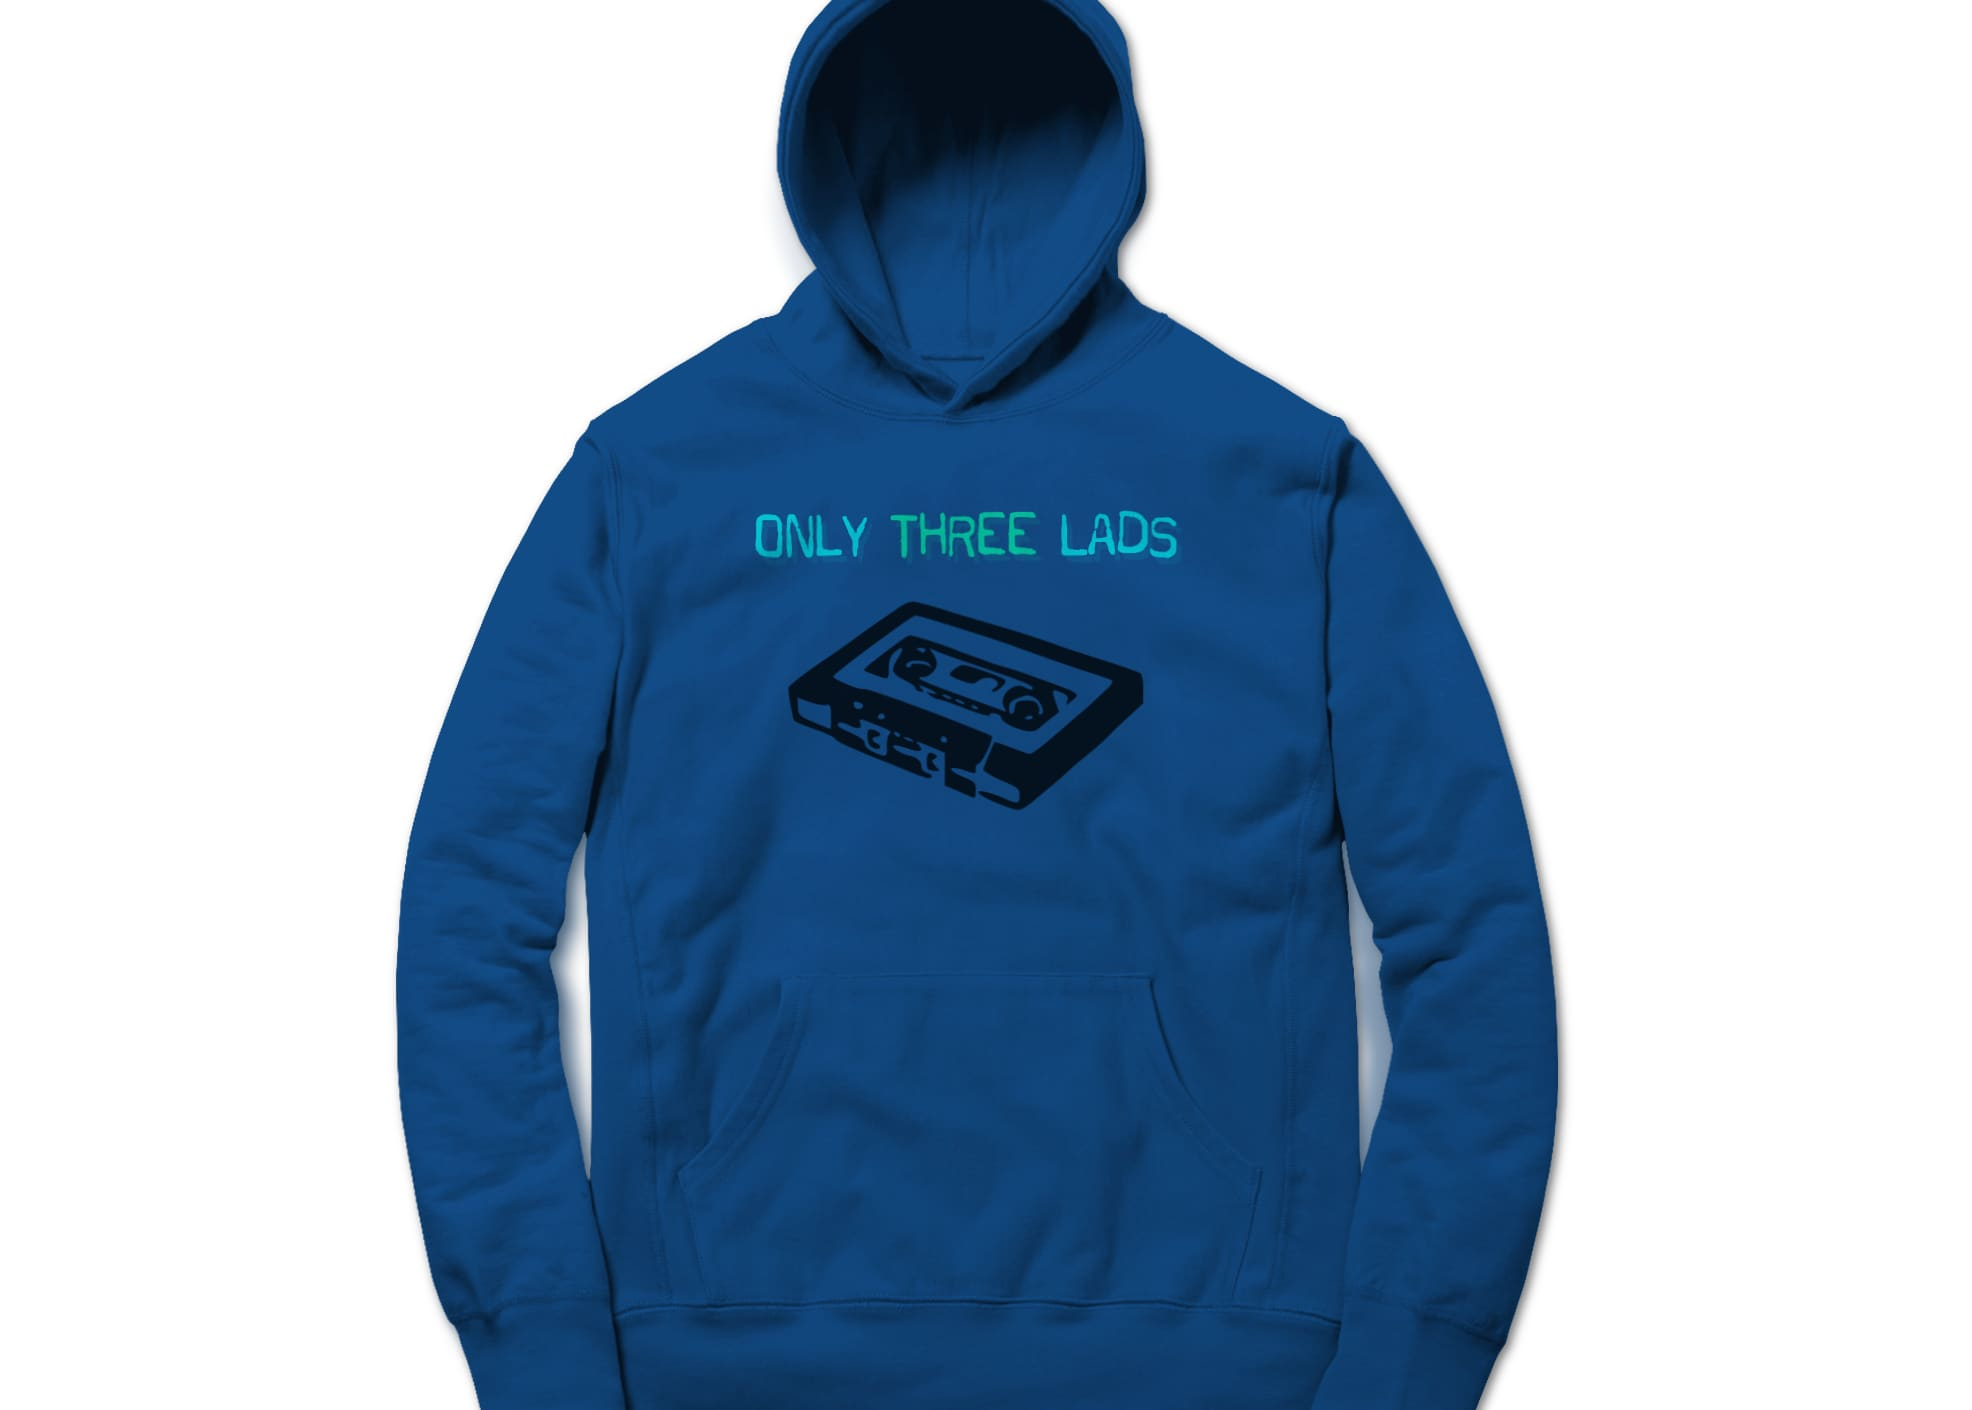 Only three lads o3l   tape  royal blue  1579510877